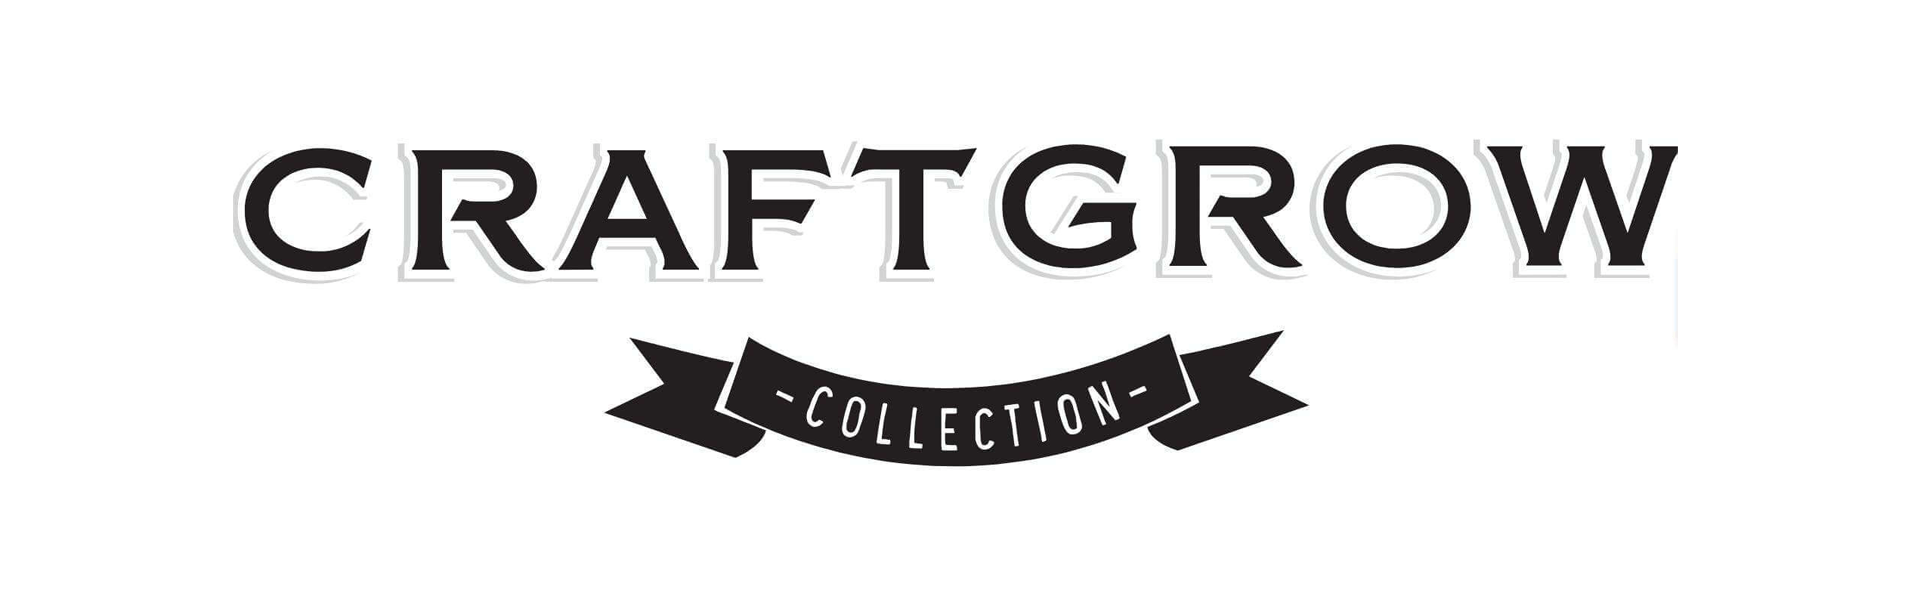 Craftgrow Collection Logo black text